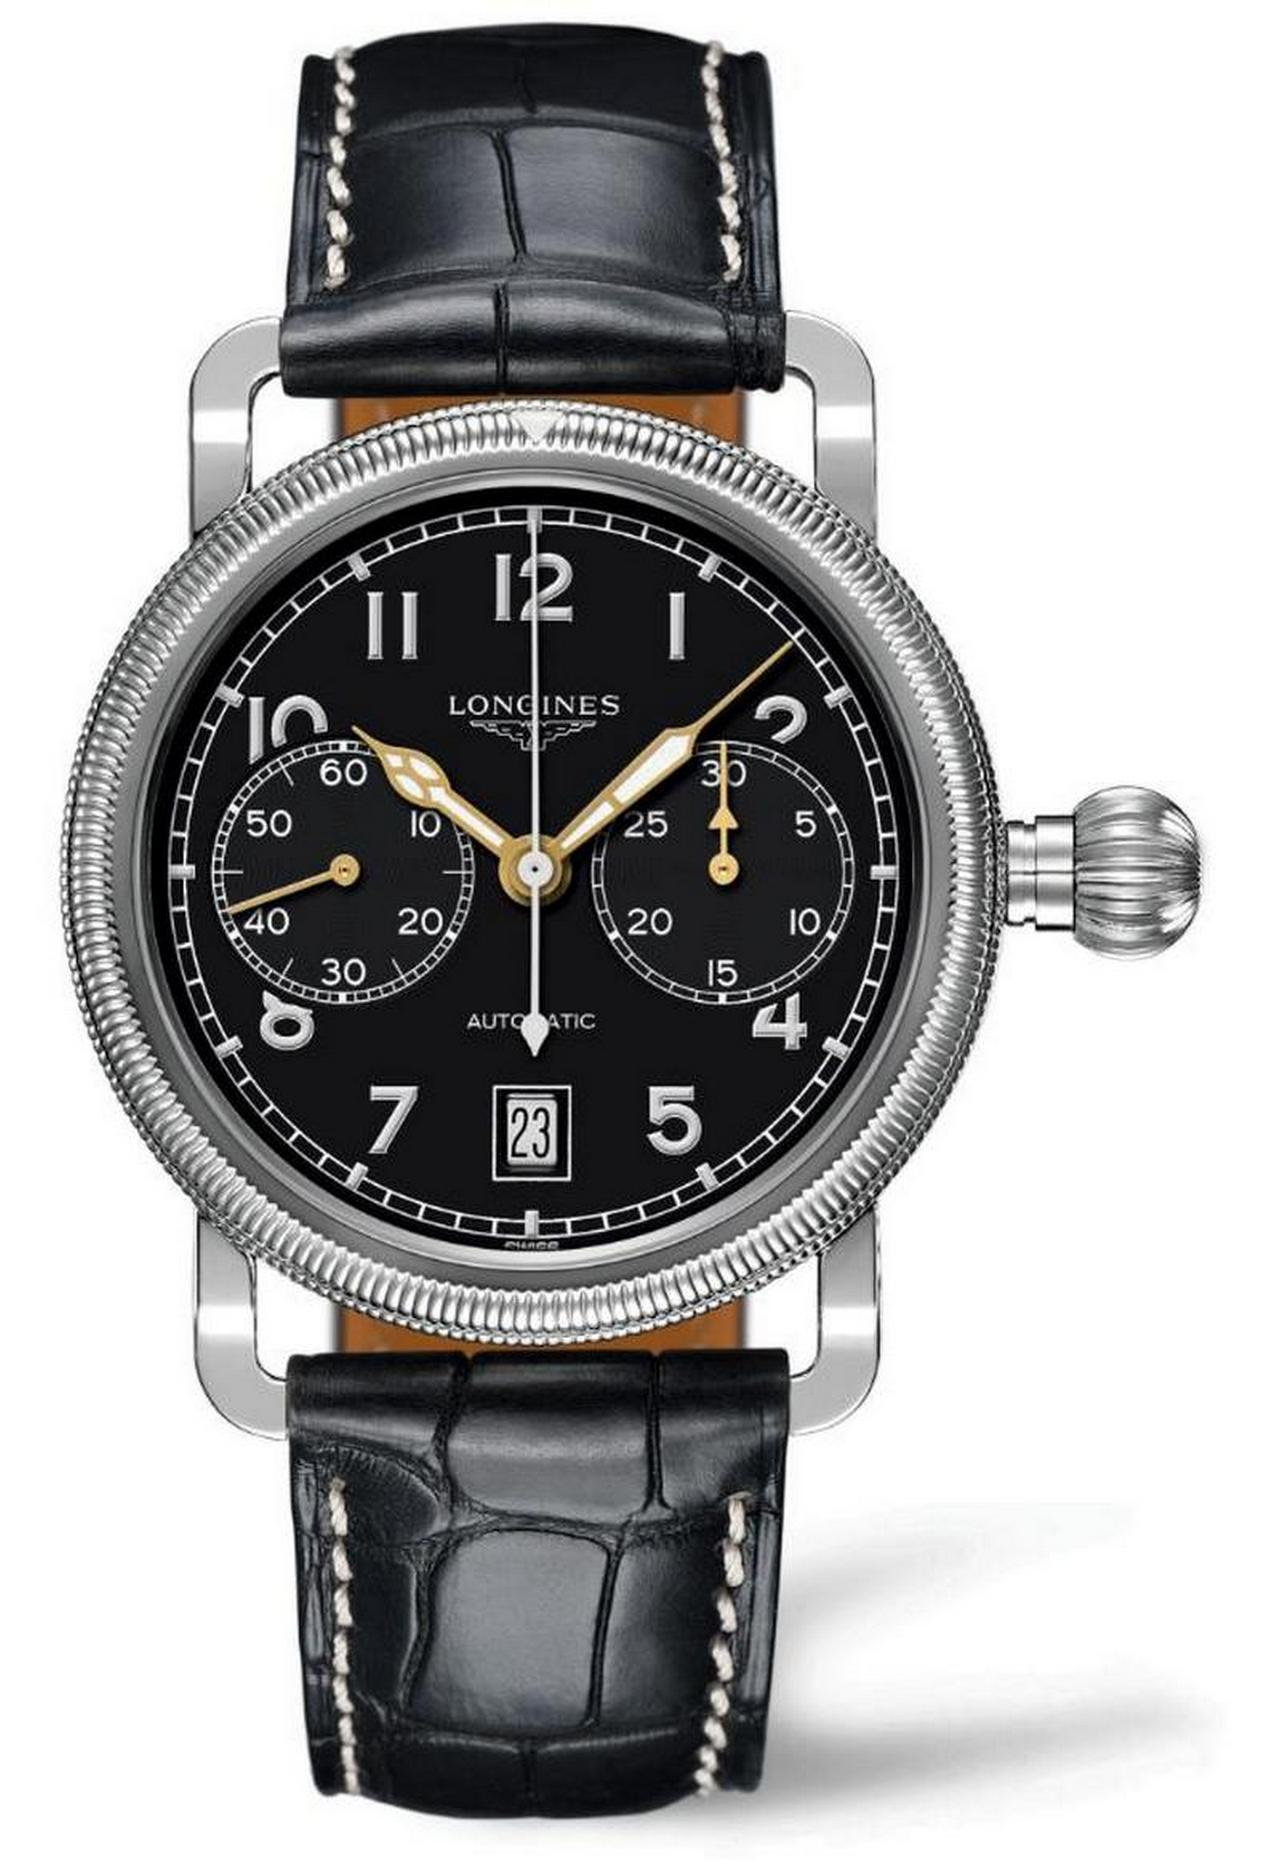 longines-avigation-oversize-crown-monopusher-chronograph_20-100